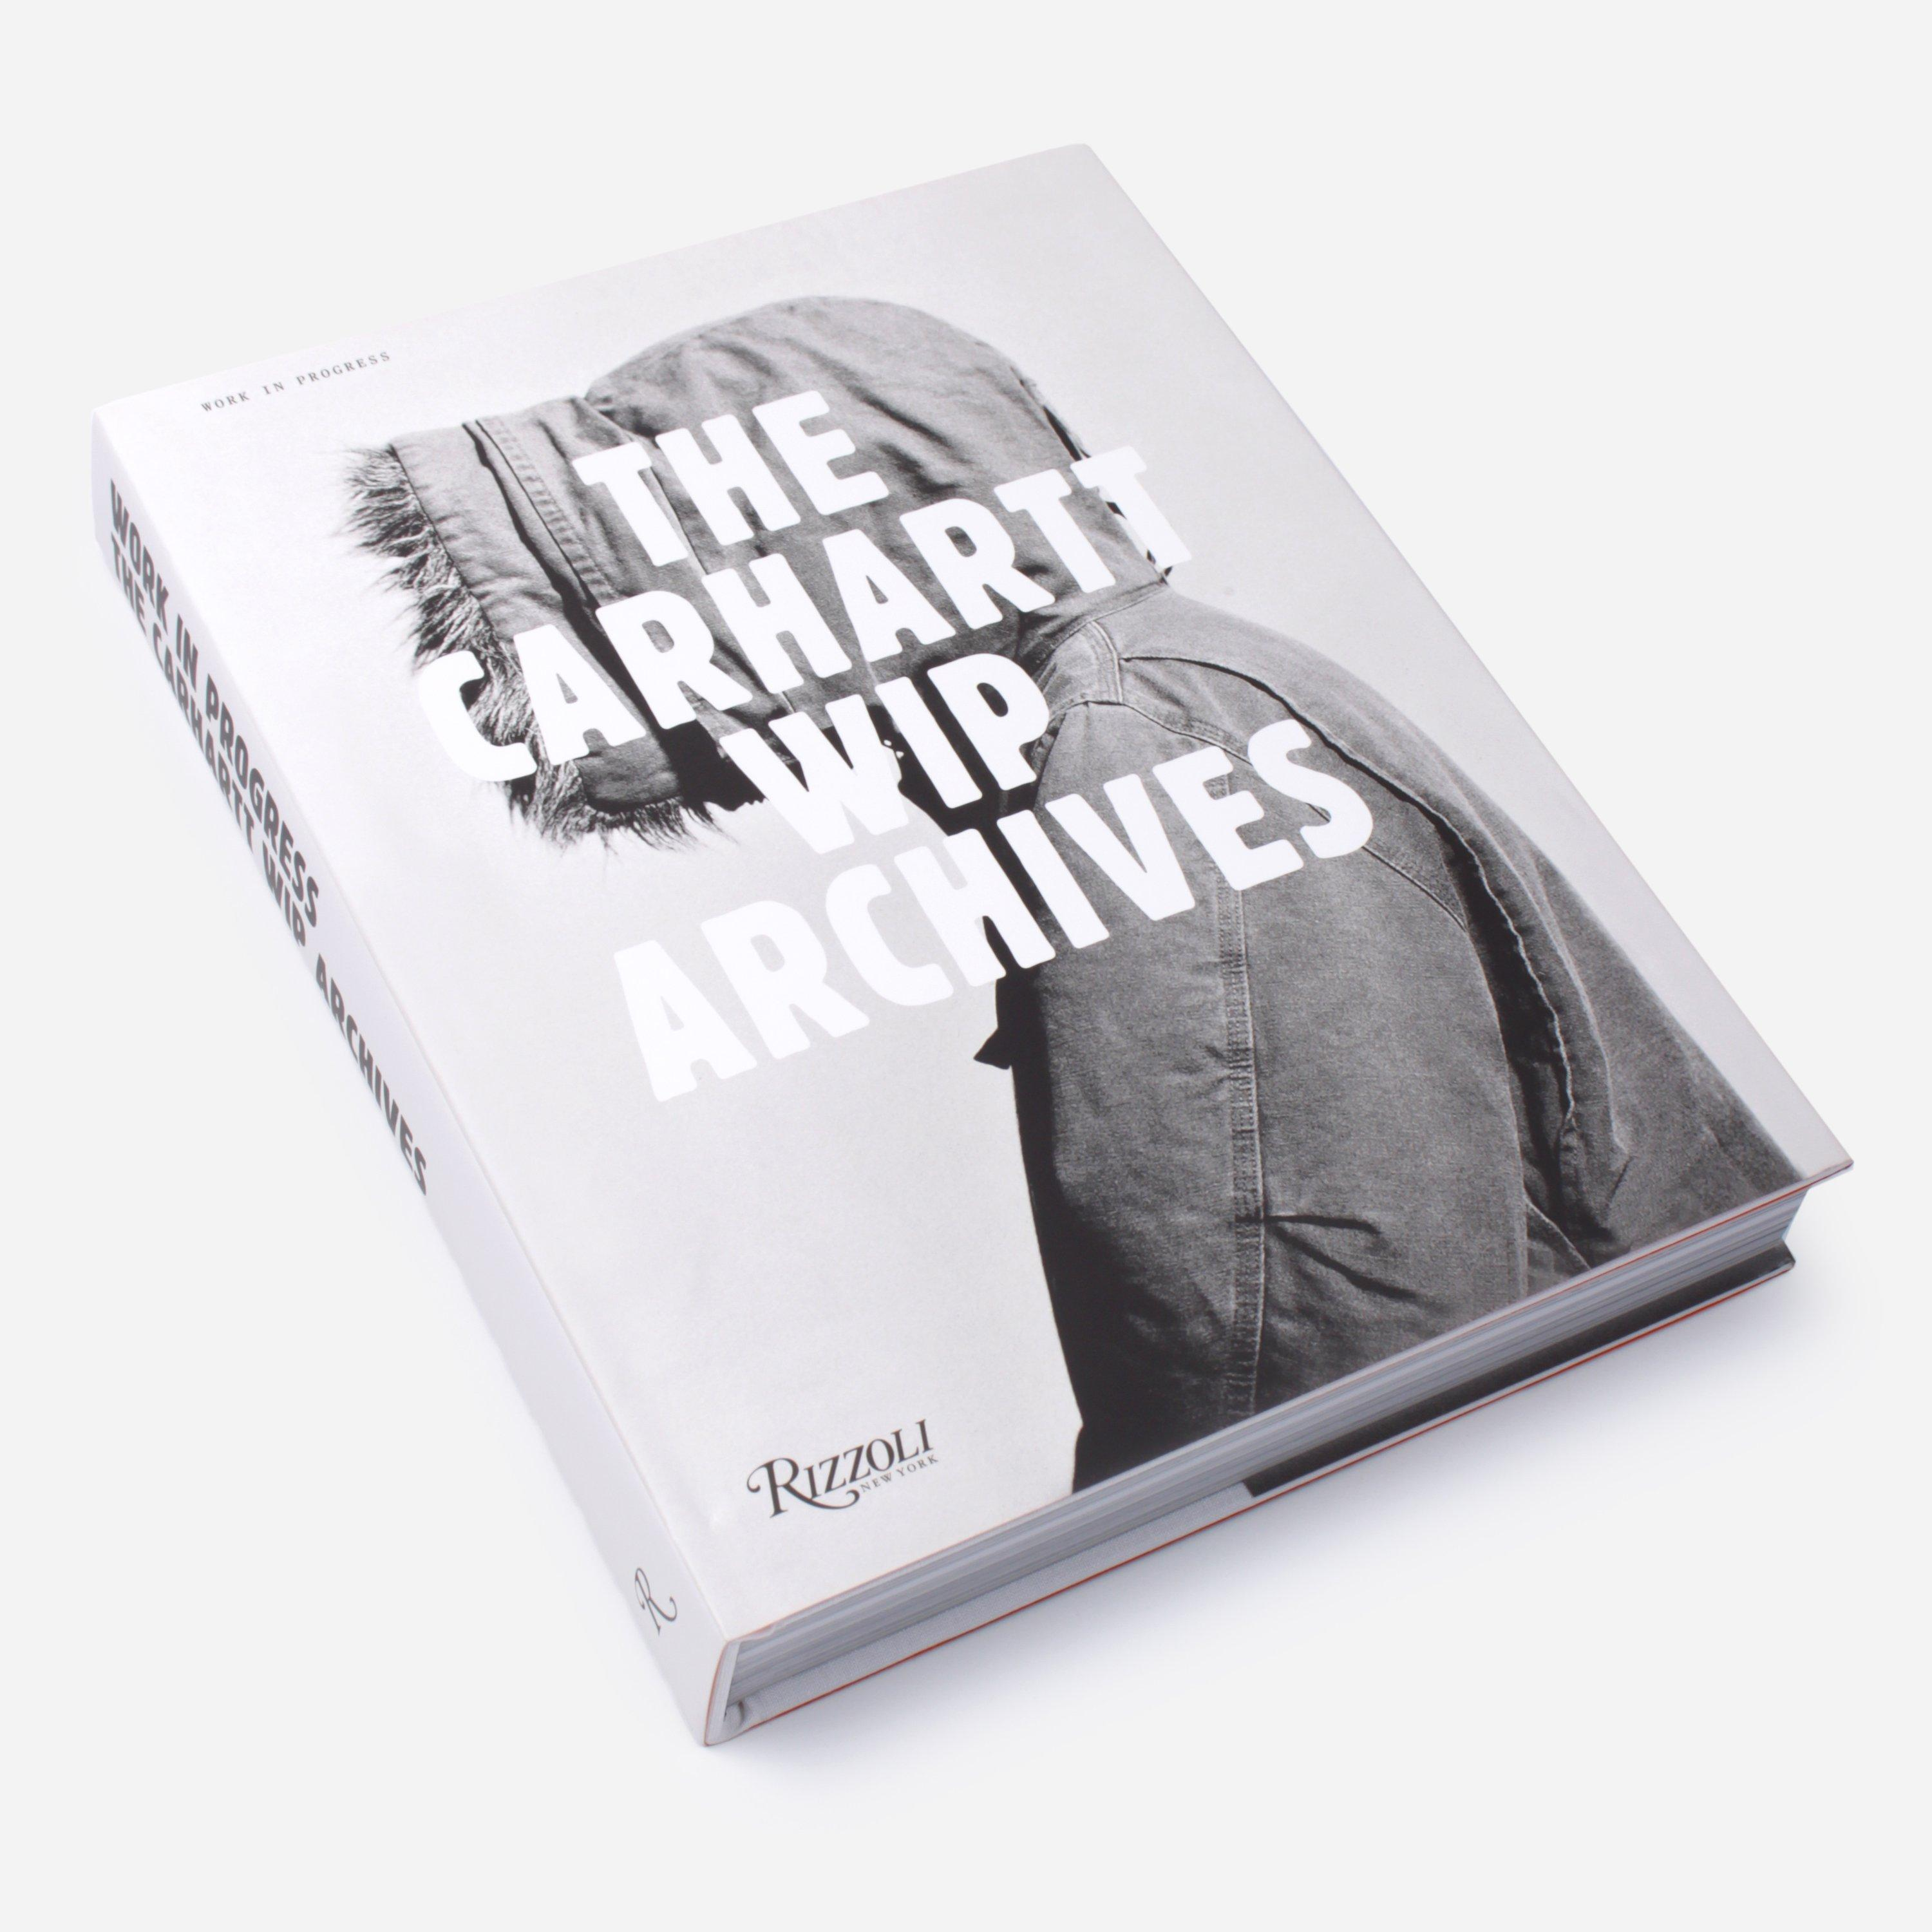 Carhartt Archives Book